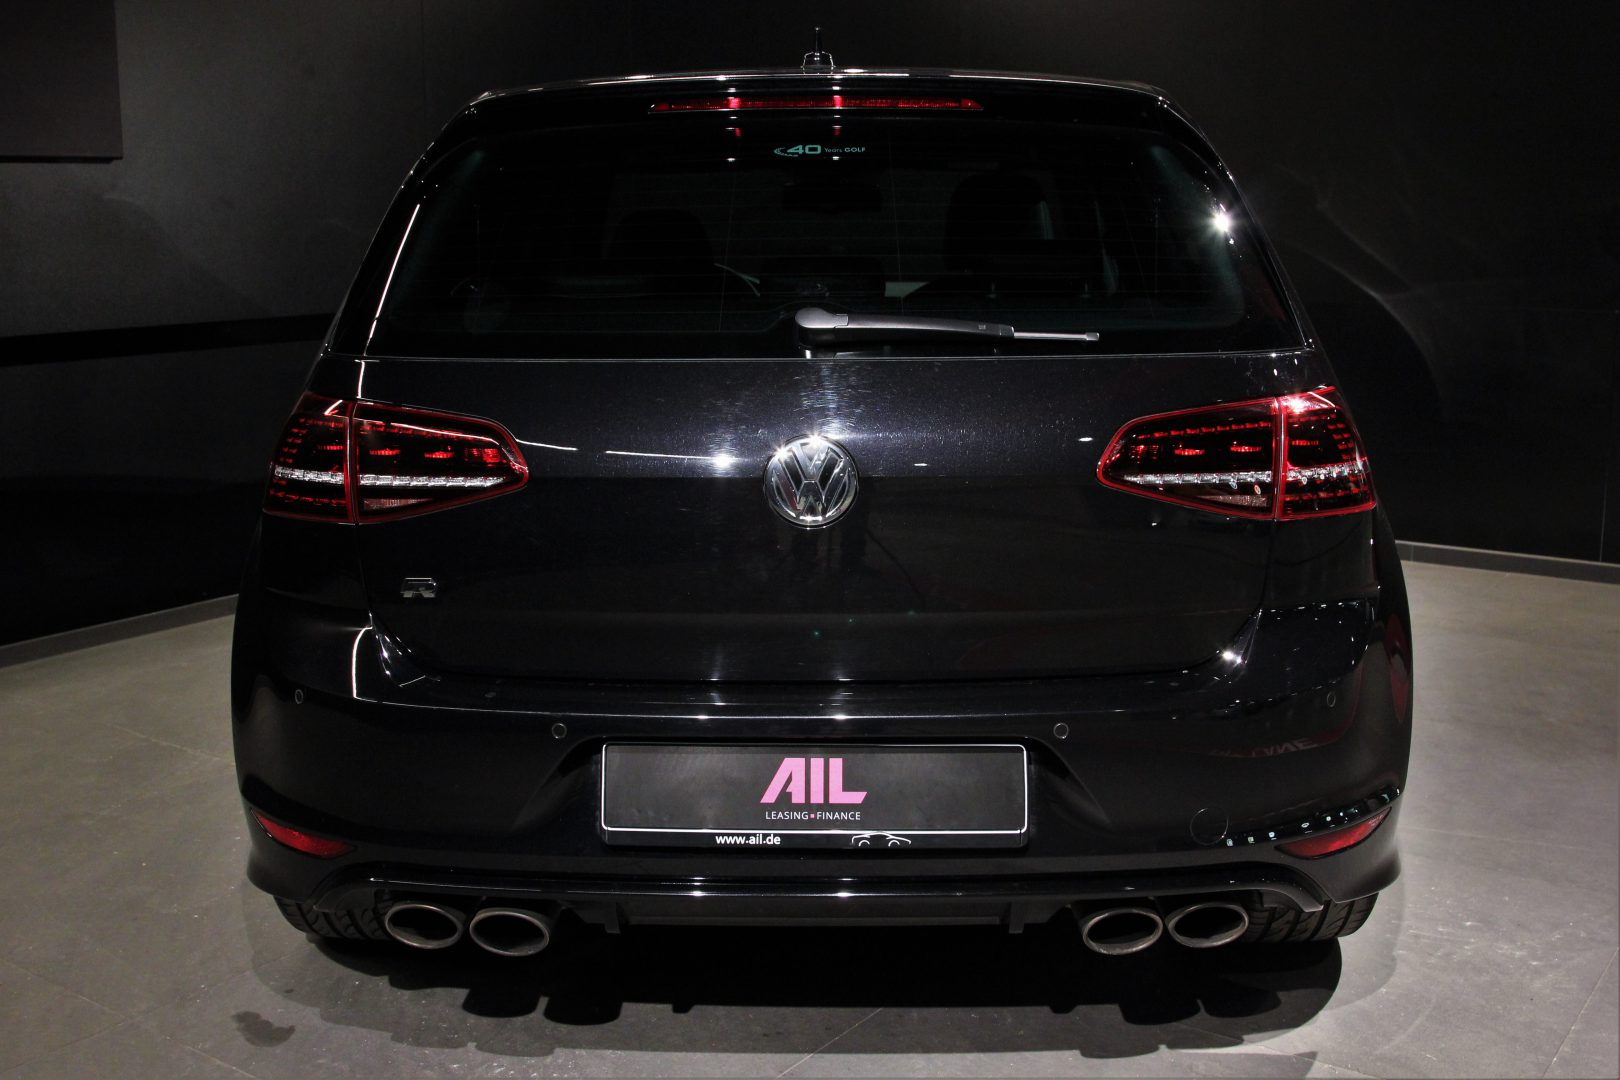 AIL VW Golf VII R 4Motion BMT 11